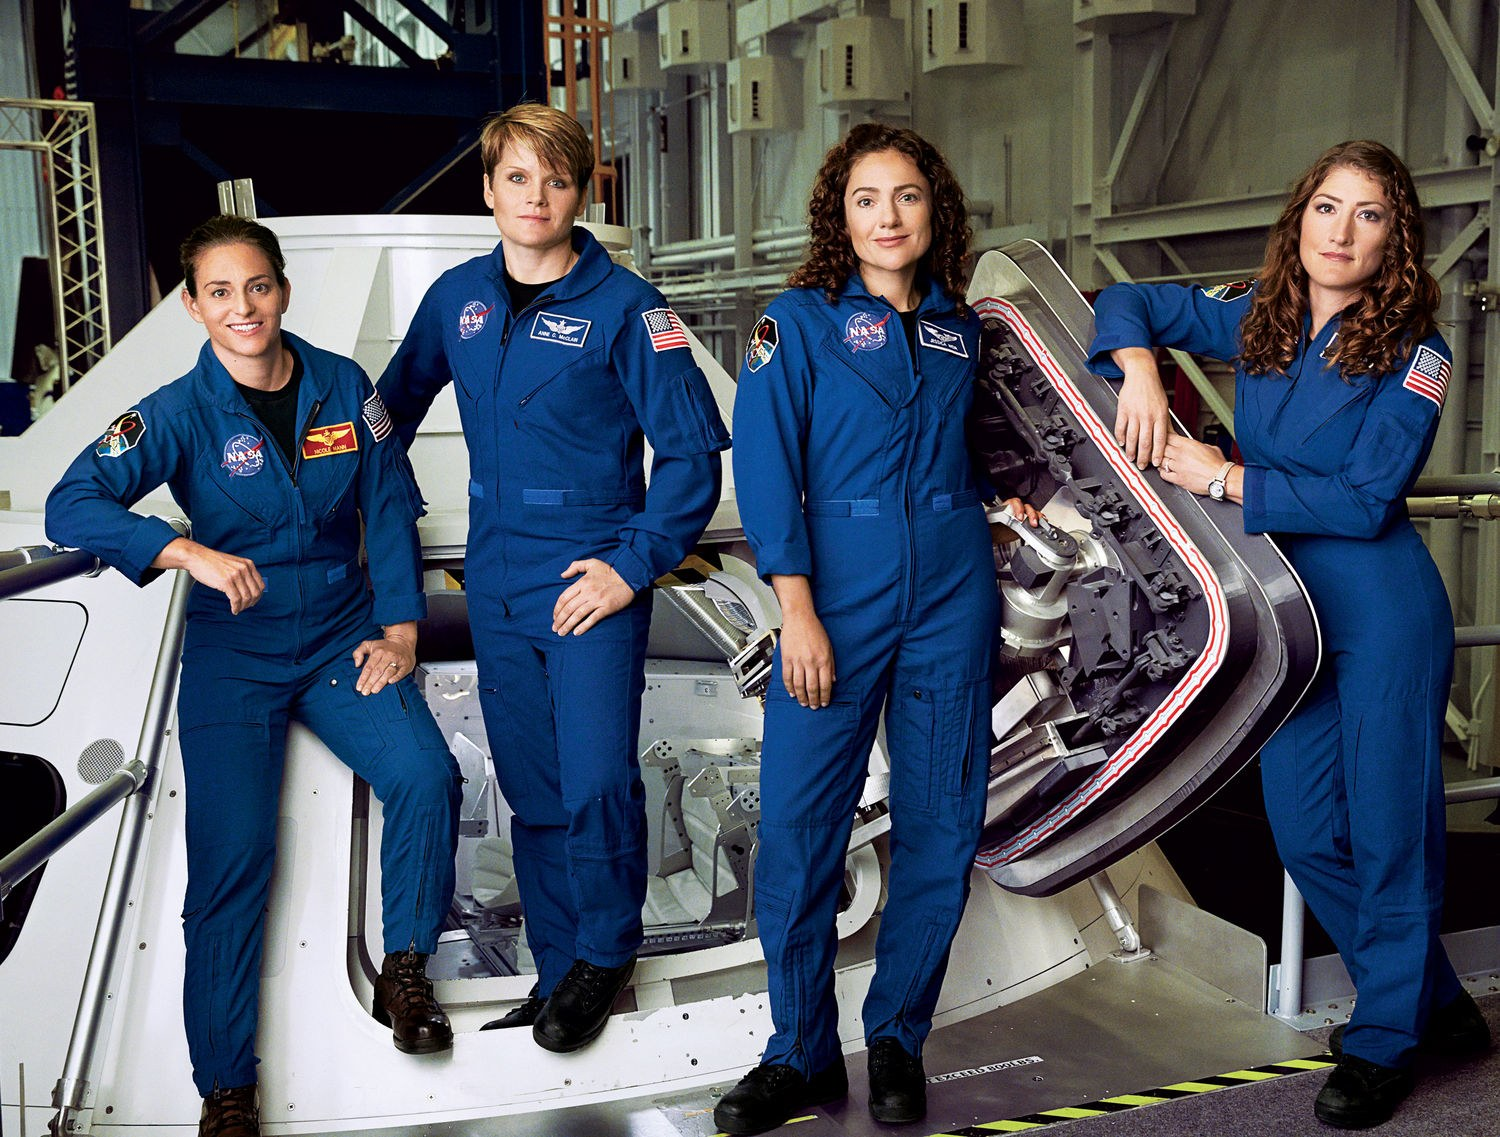 The Women Who Will Walk on the Moon Face Hurdles of Earthly Gender Bias